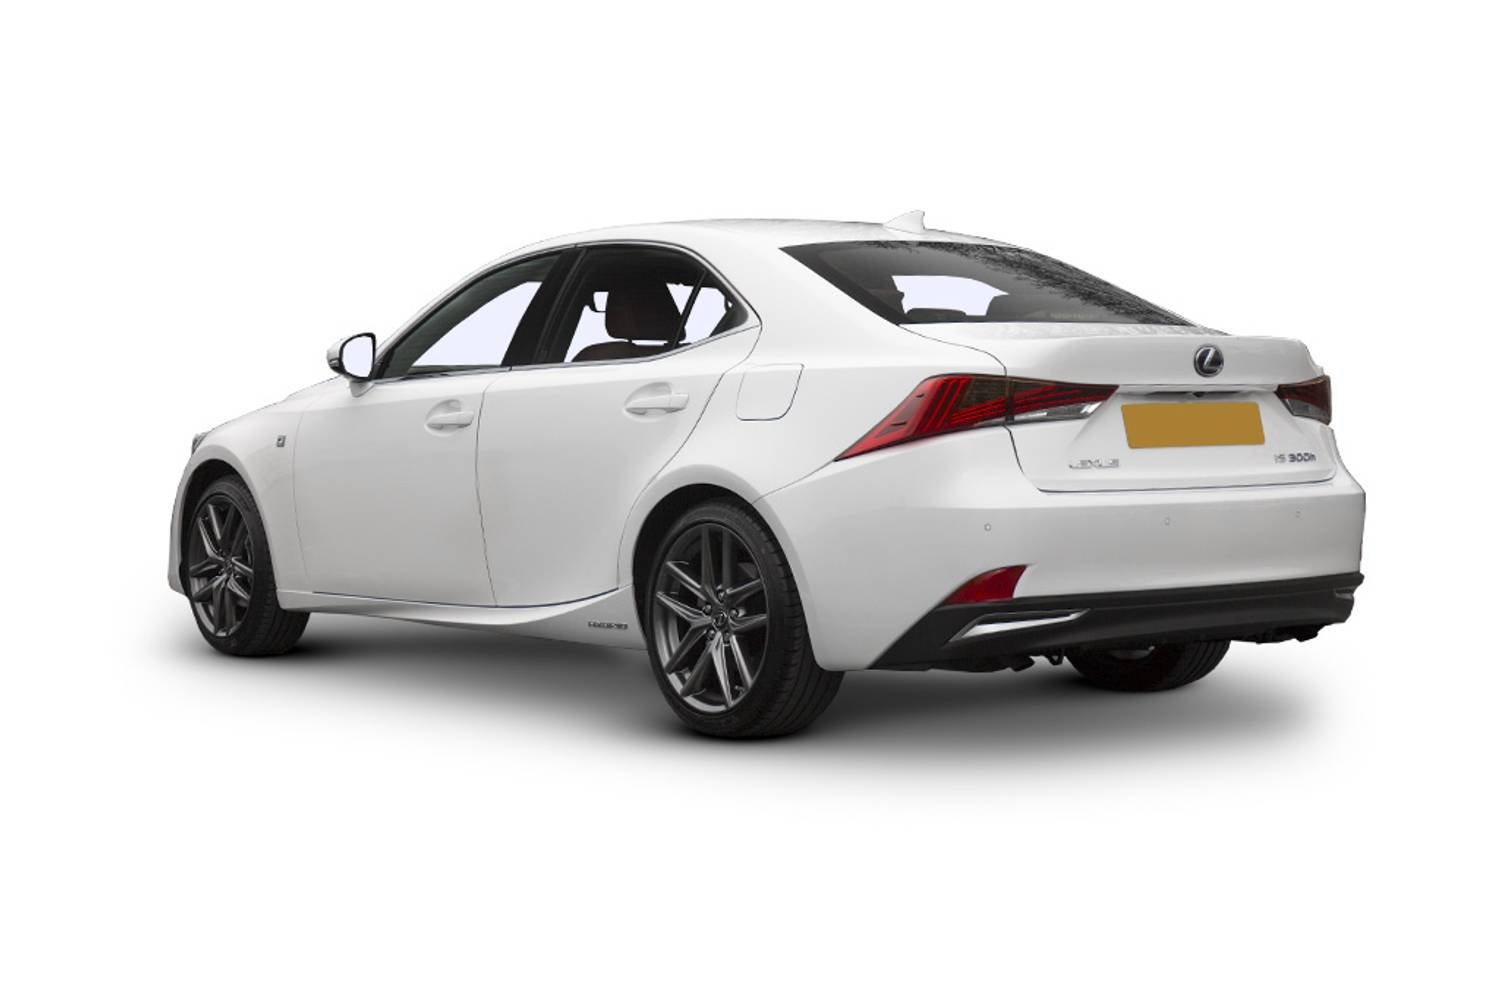 Lexus IS Saloon 4dr Auto Rear Three Quarter